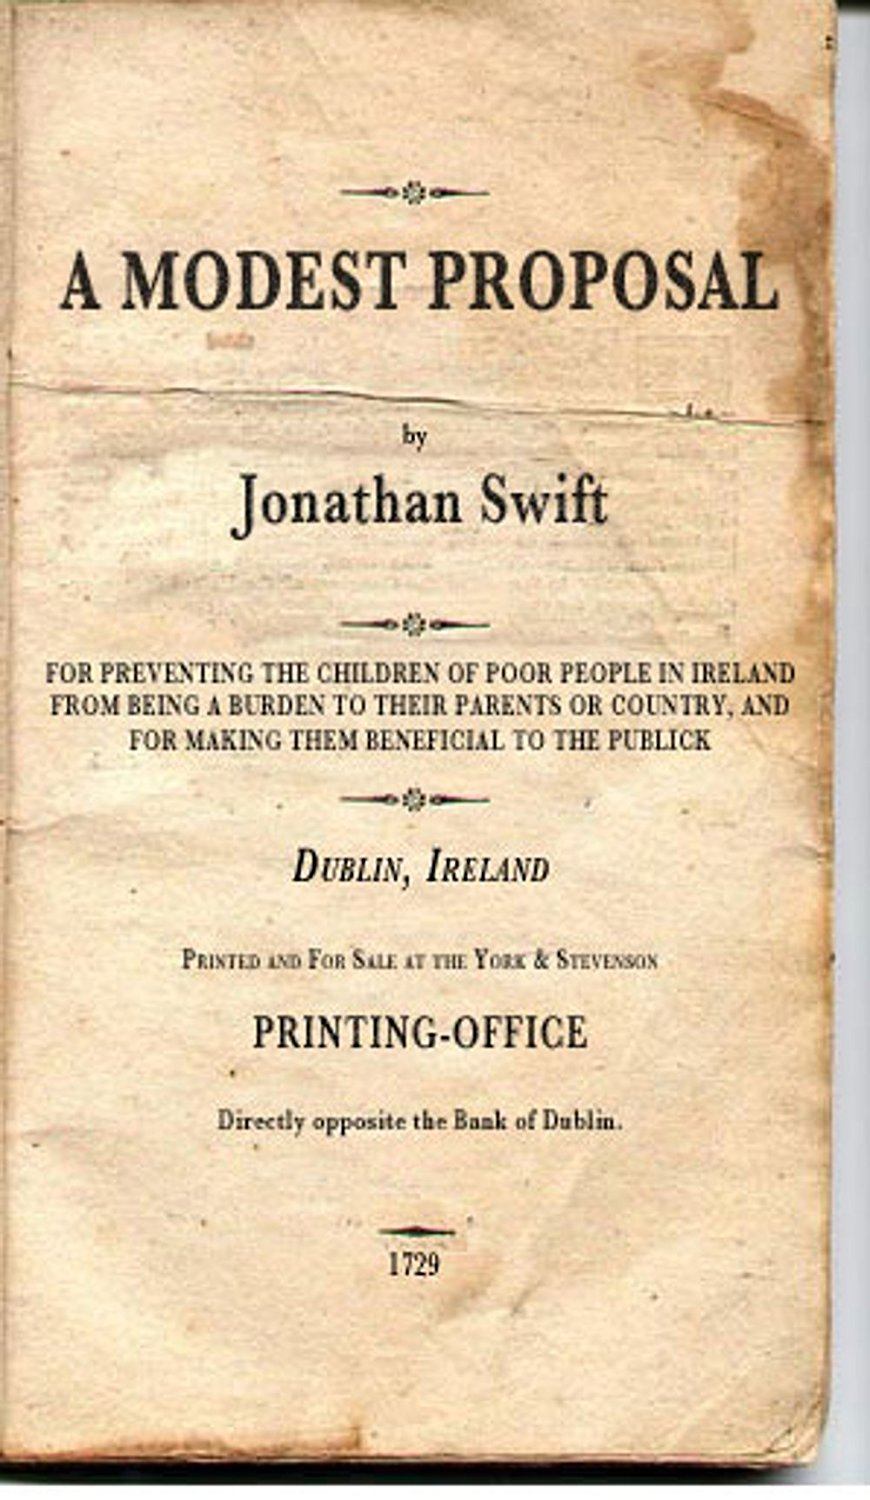 thesis a modest proposal A modest proposal by jonathan swift thesis a modest proposal jonathan swift, a celebrated name during the eighteenth century, was an economist, a writer, and a cleric who was later named dean of st patrick's cathedral in dublin.